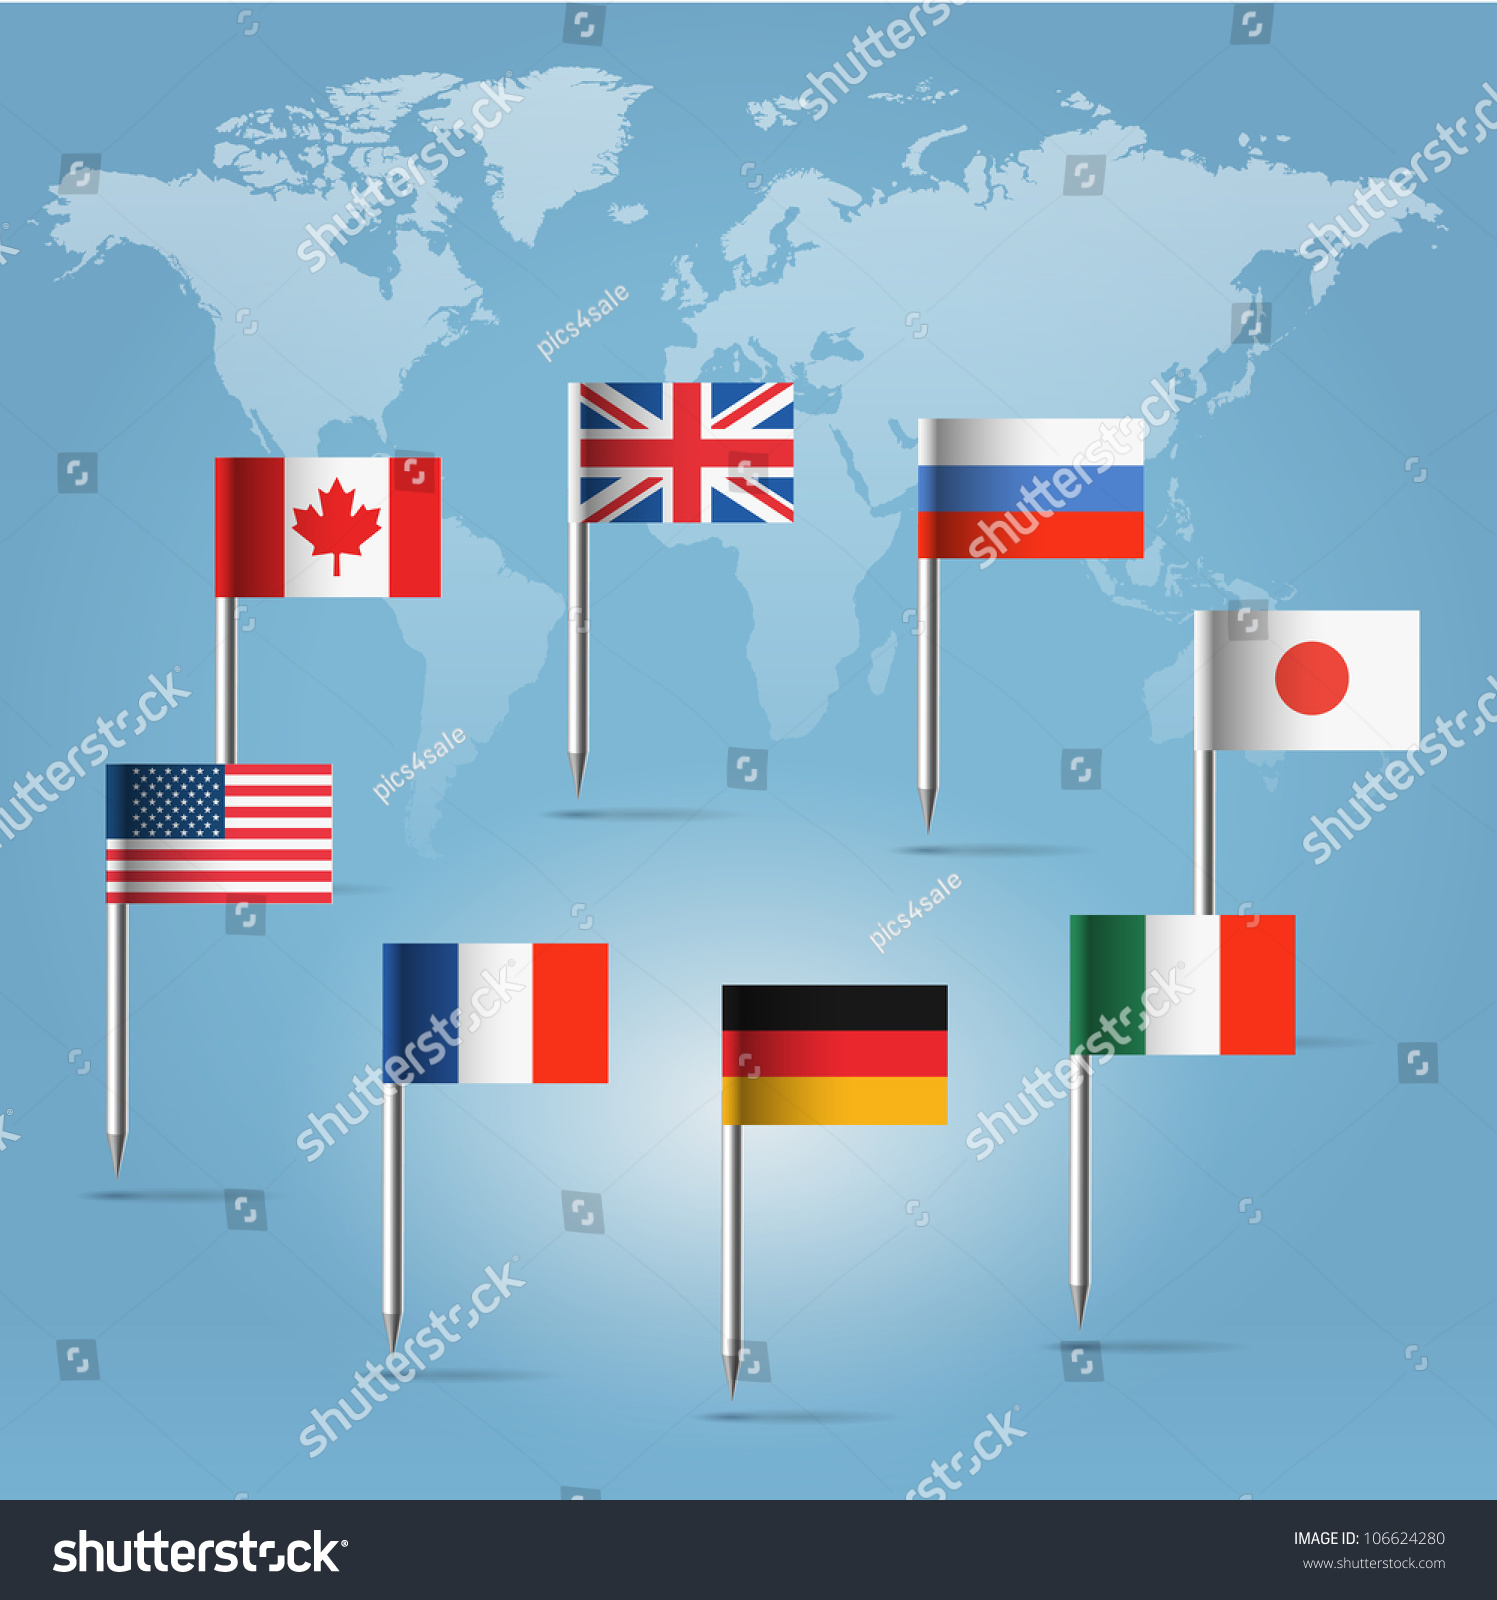 Glossy beautiful pin flags canada germany vectores en stock glossy beautiful pin flags of canada germany russia uk italy france gumiabroncs Gallery